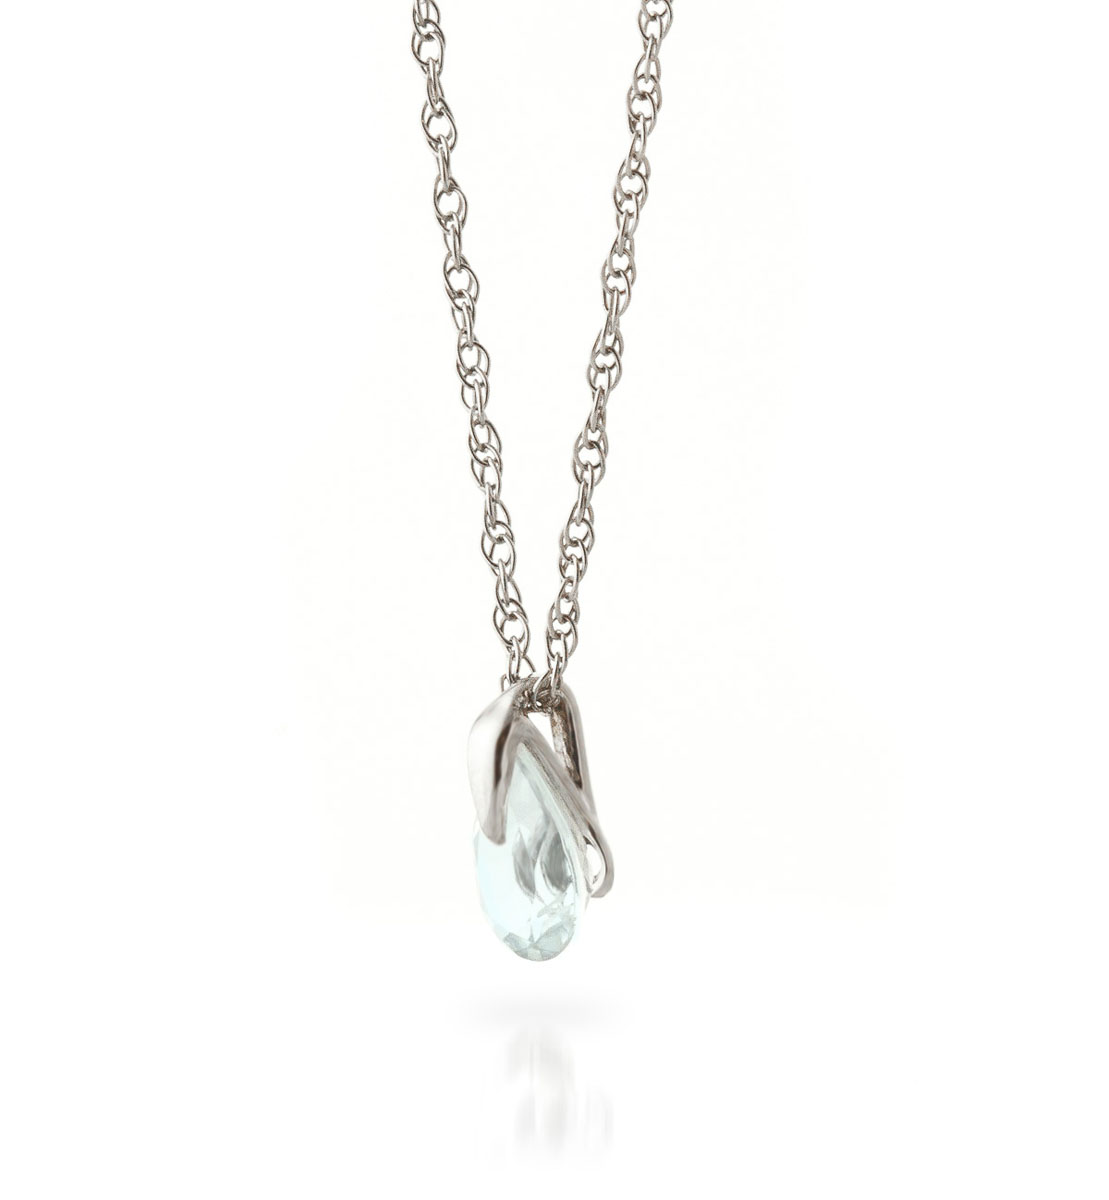 Aquamarine Pear Drop Pendant Necklace 0.68 ct in 9ct White Gold